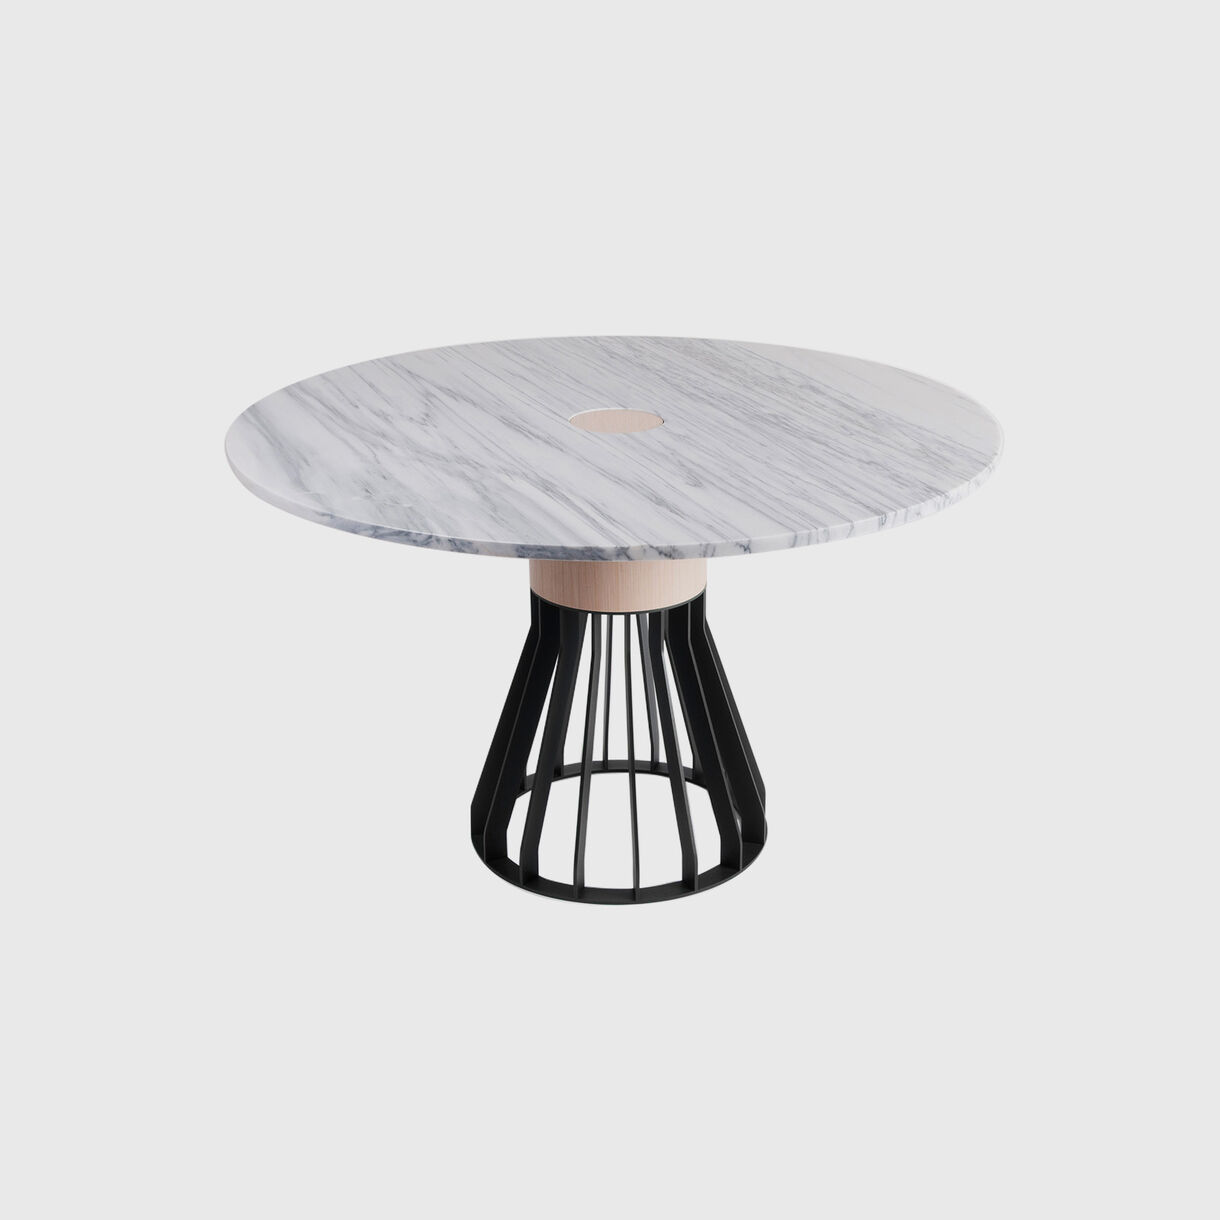 Mewoma Table, Round